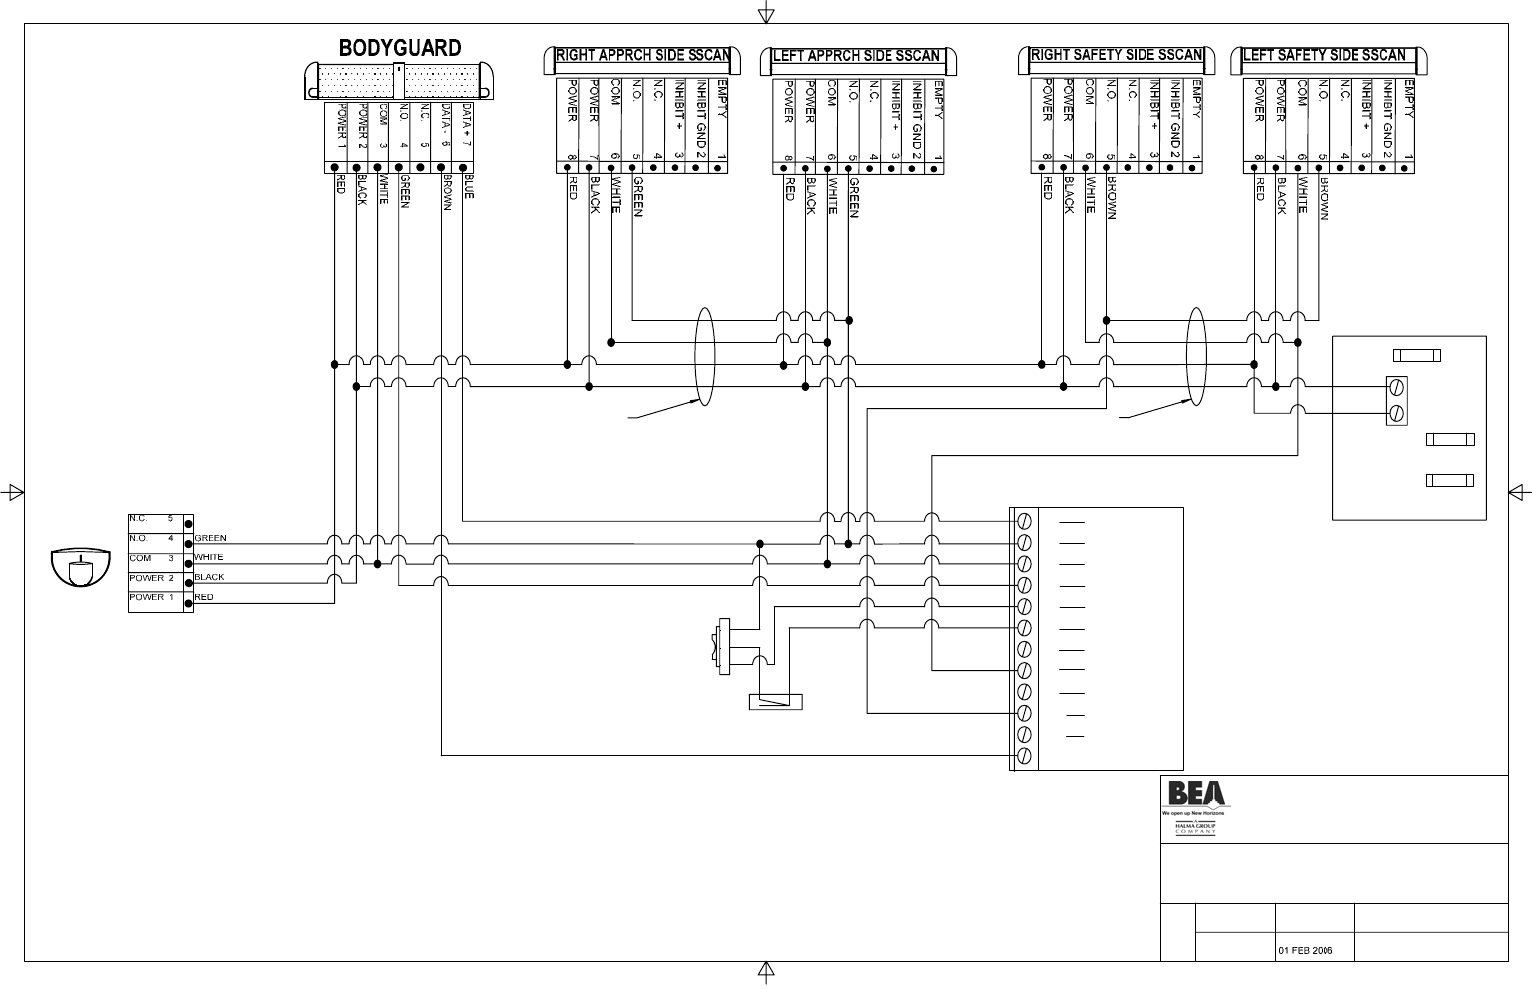 bg4 bea 80 0091 02, c2150 manual c4190 control, c3938 p s horton 4160 wiring diagram at reclaimingppi.co